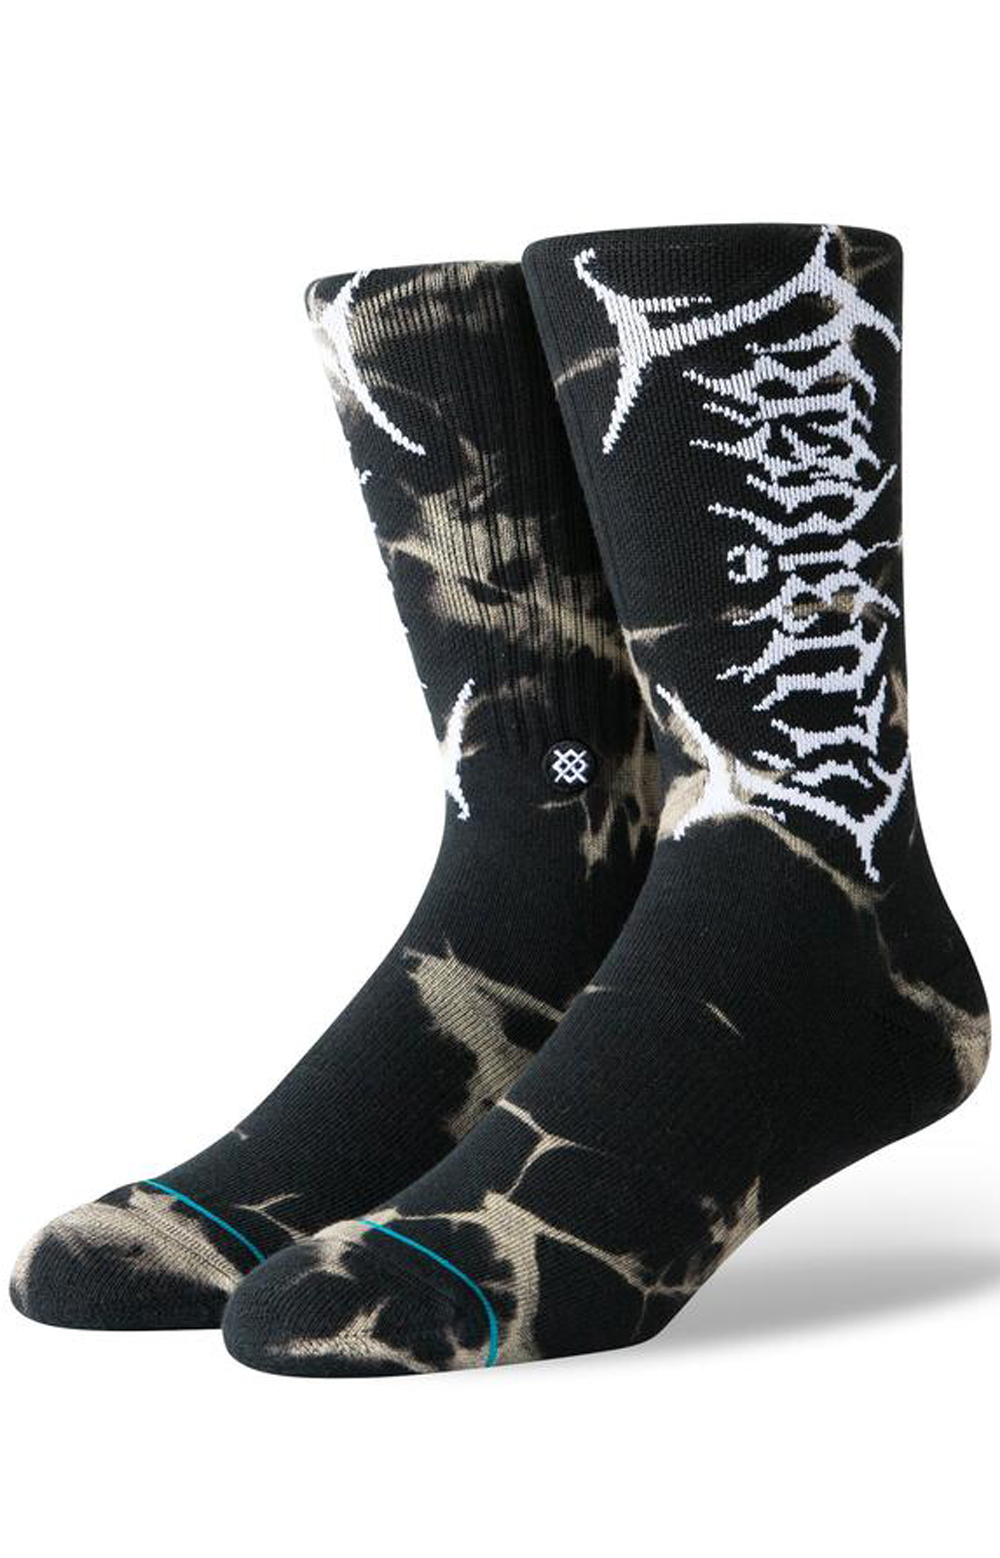 Uzi Dye Socks - Black